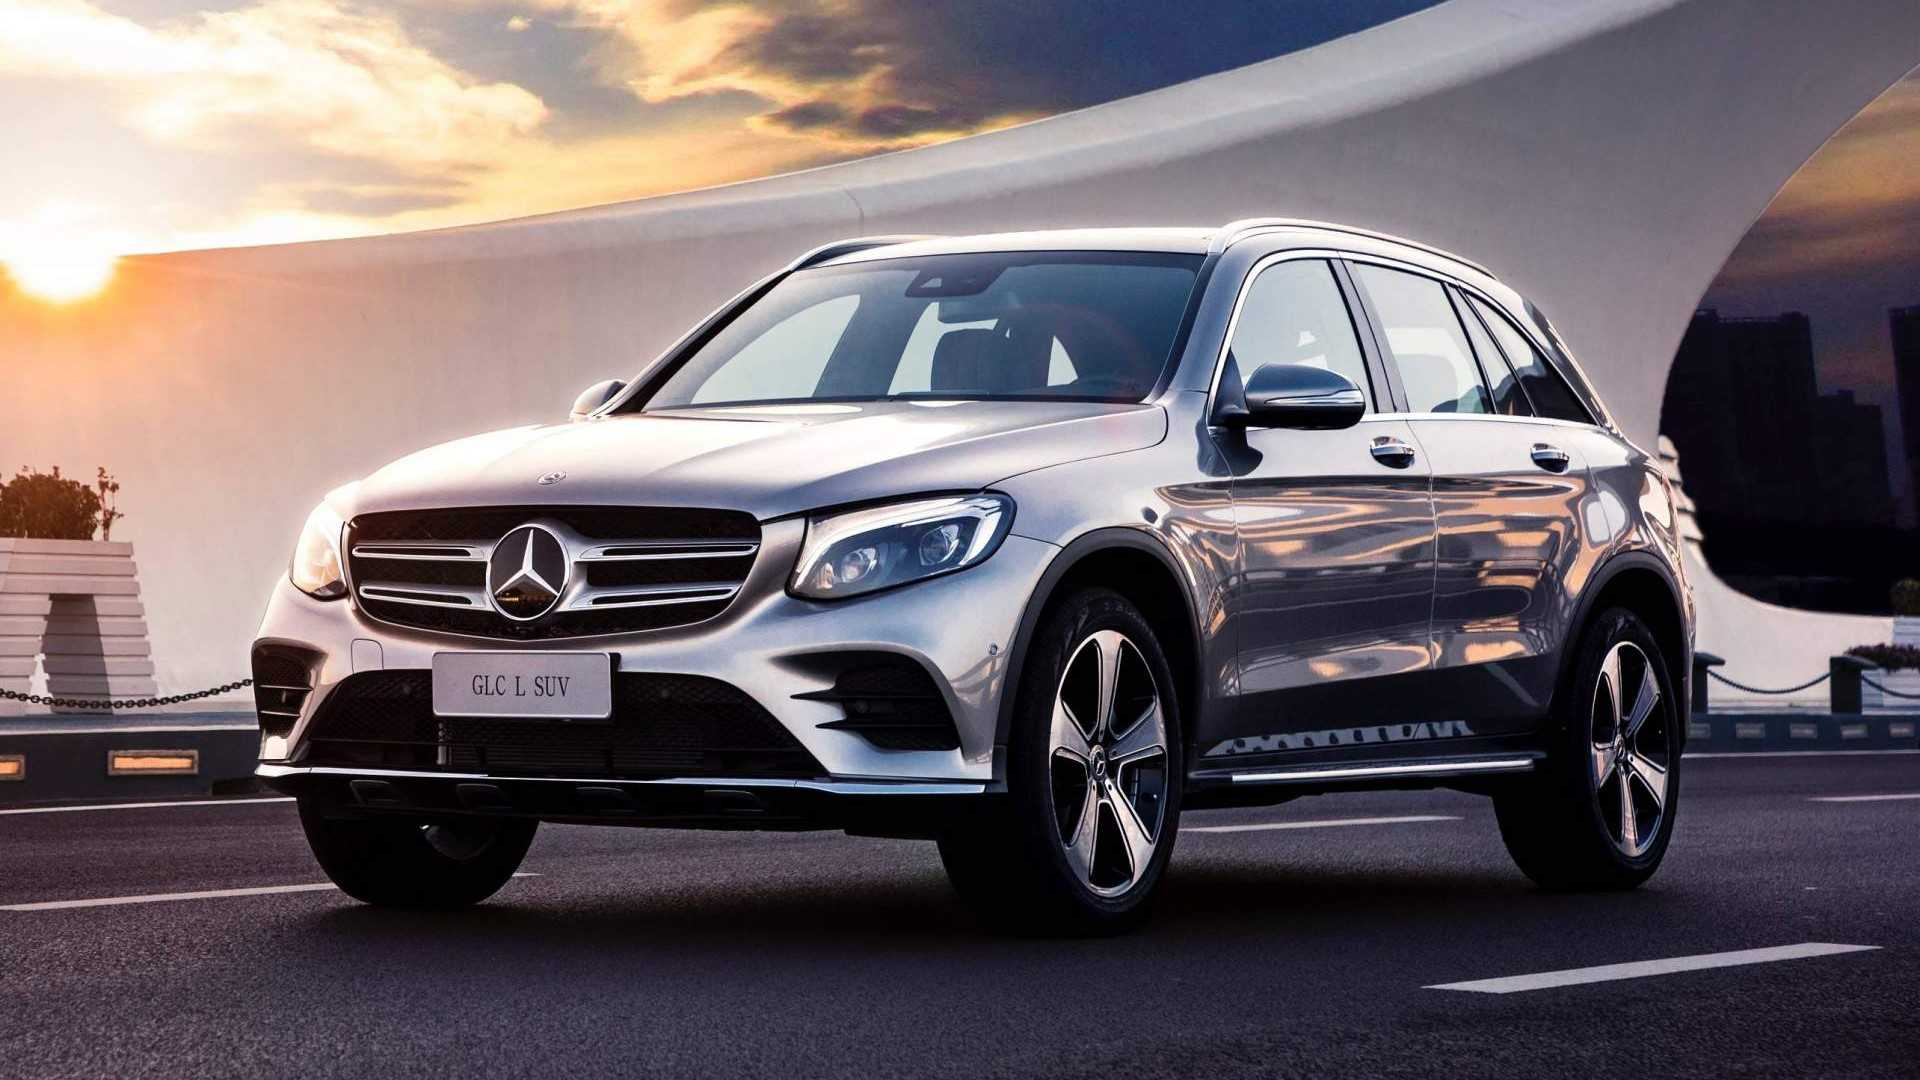 65 New Mercedes Glc Wallpaper